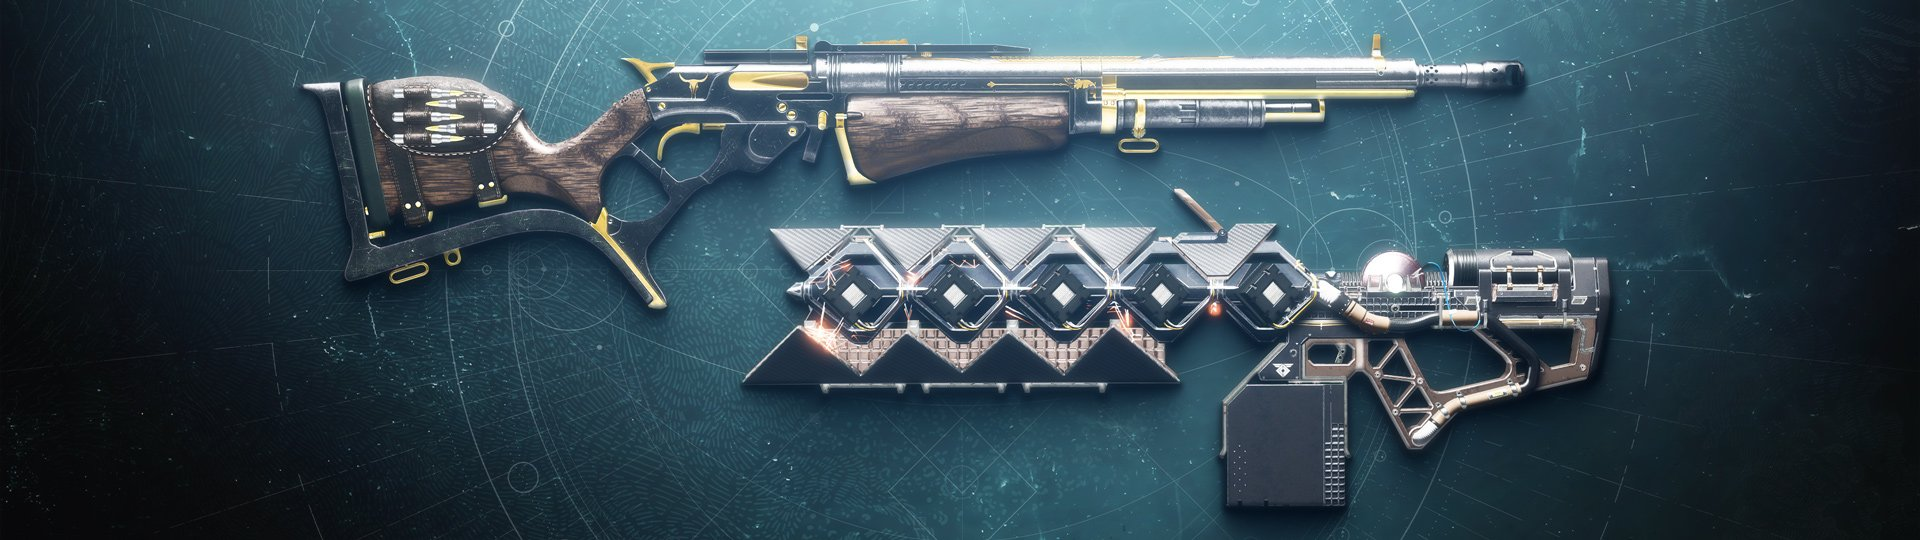 JJ_Weapons_02